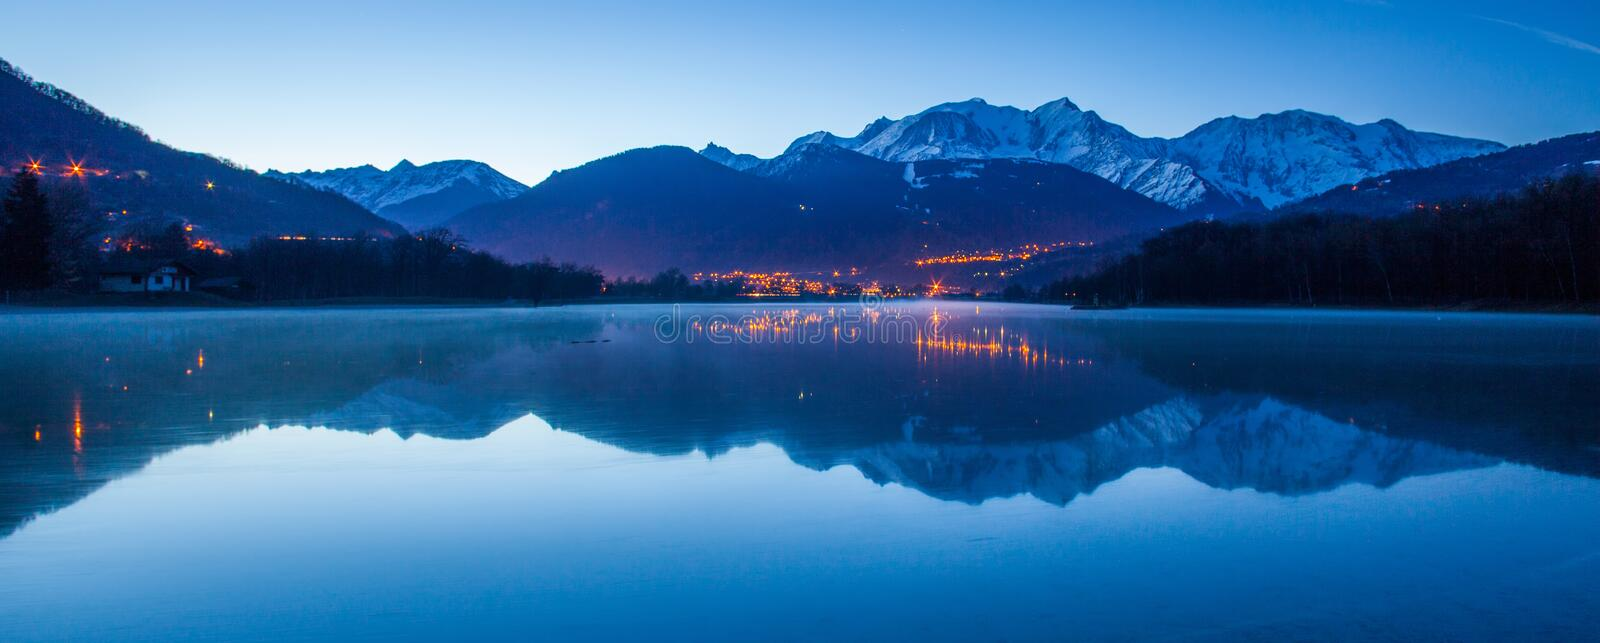 Mont Blanc Massif, France and Reflection I. Mont Blanc Massif and reflection captured from the edge of Lac du Passy, Passy, France. Located in the Arve Valley stock image